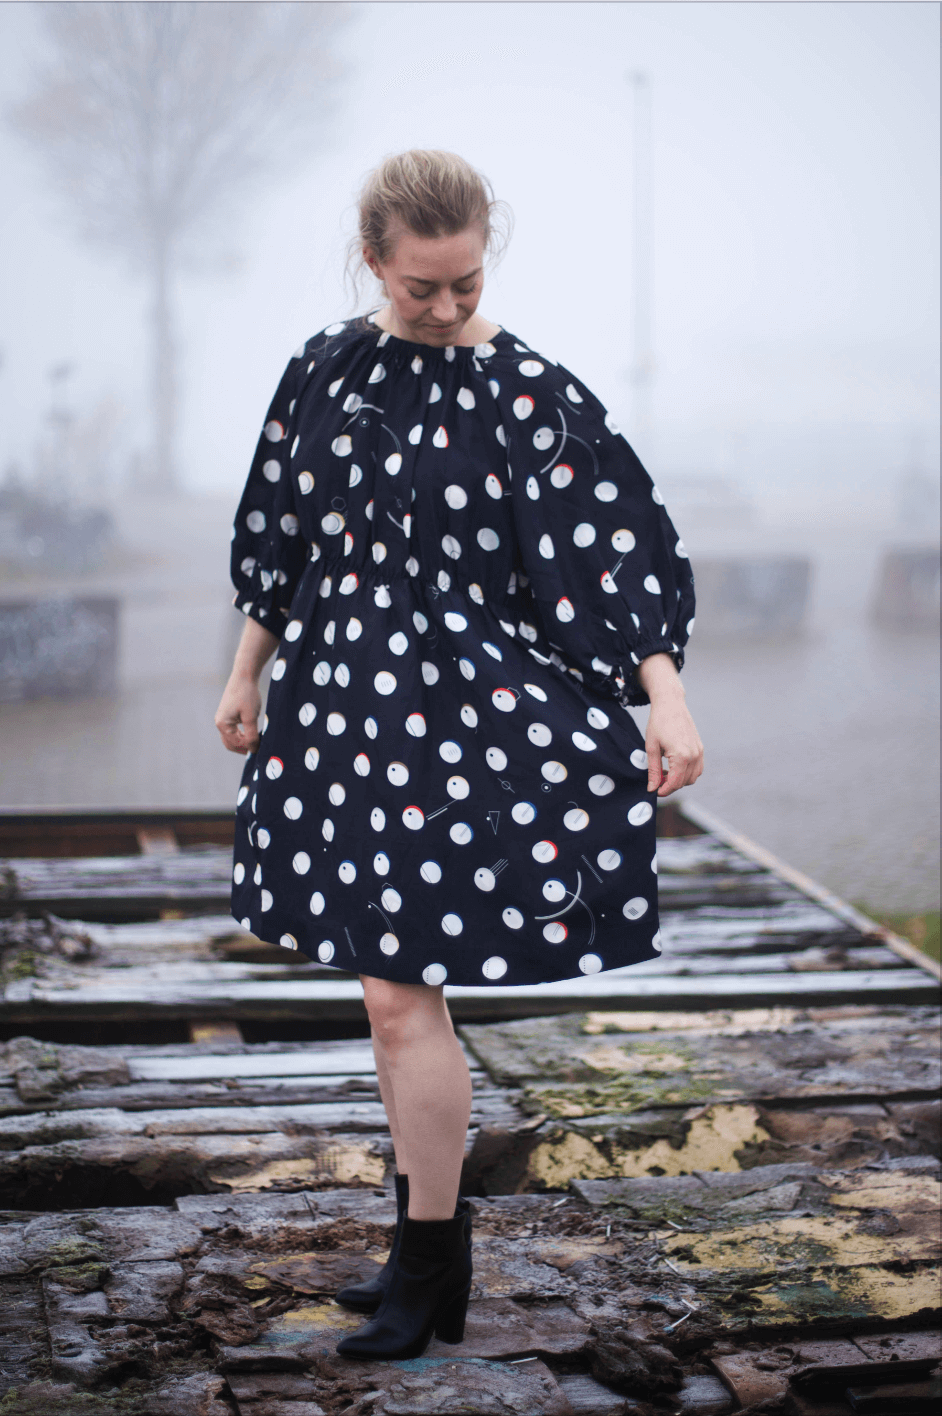 Giorgia Lupi created together with & Other Stories a new and unique fashion collection for women. This & other stories dress is inspired by data visualisation design. Click the link to find out more about this amazing fashion collection!#fashion #dress #andotherstories #outfit #polkadot